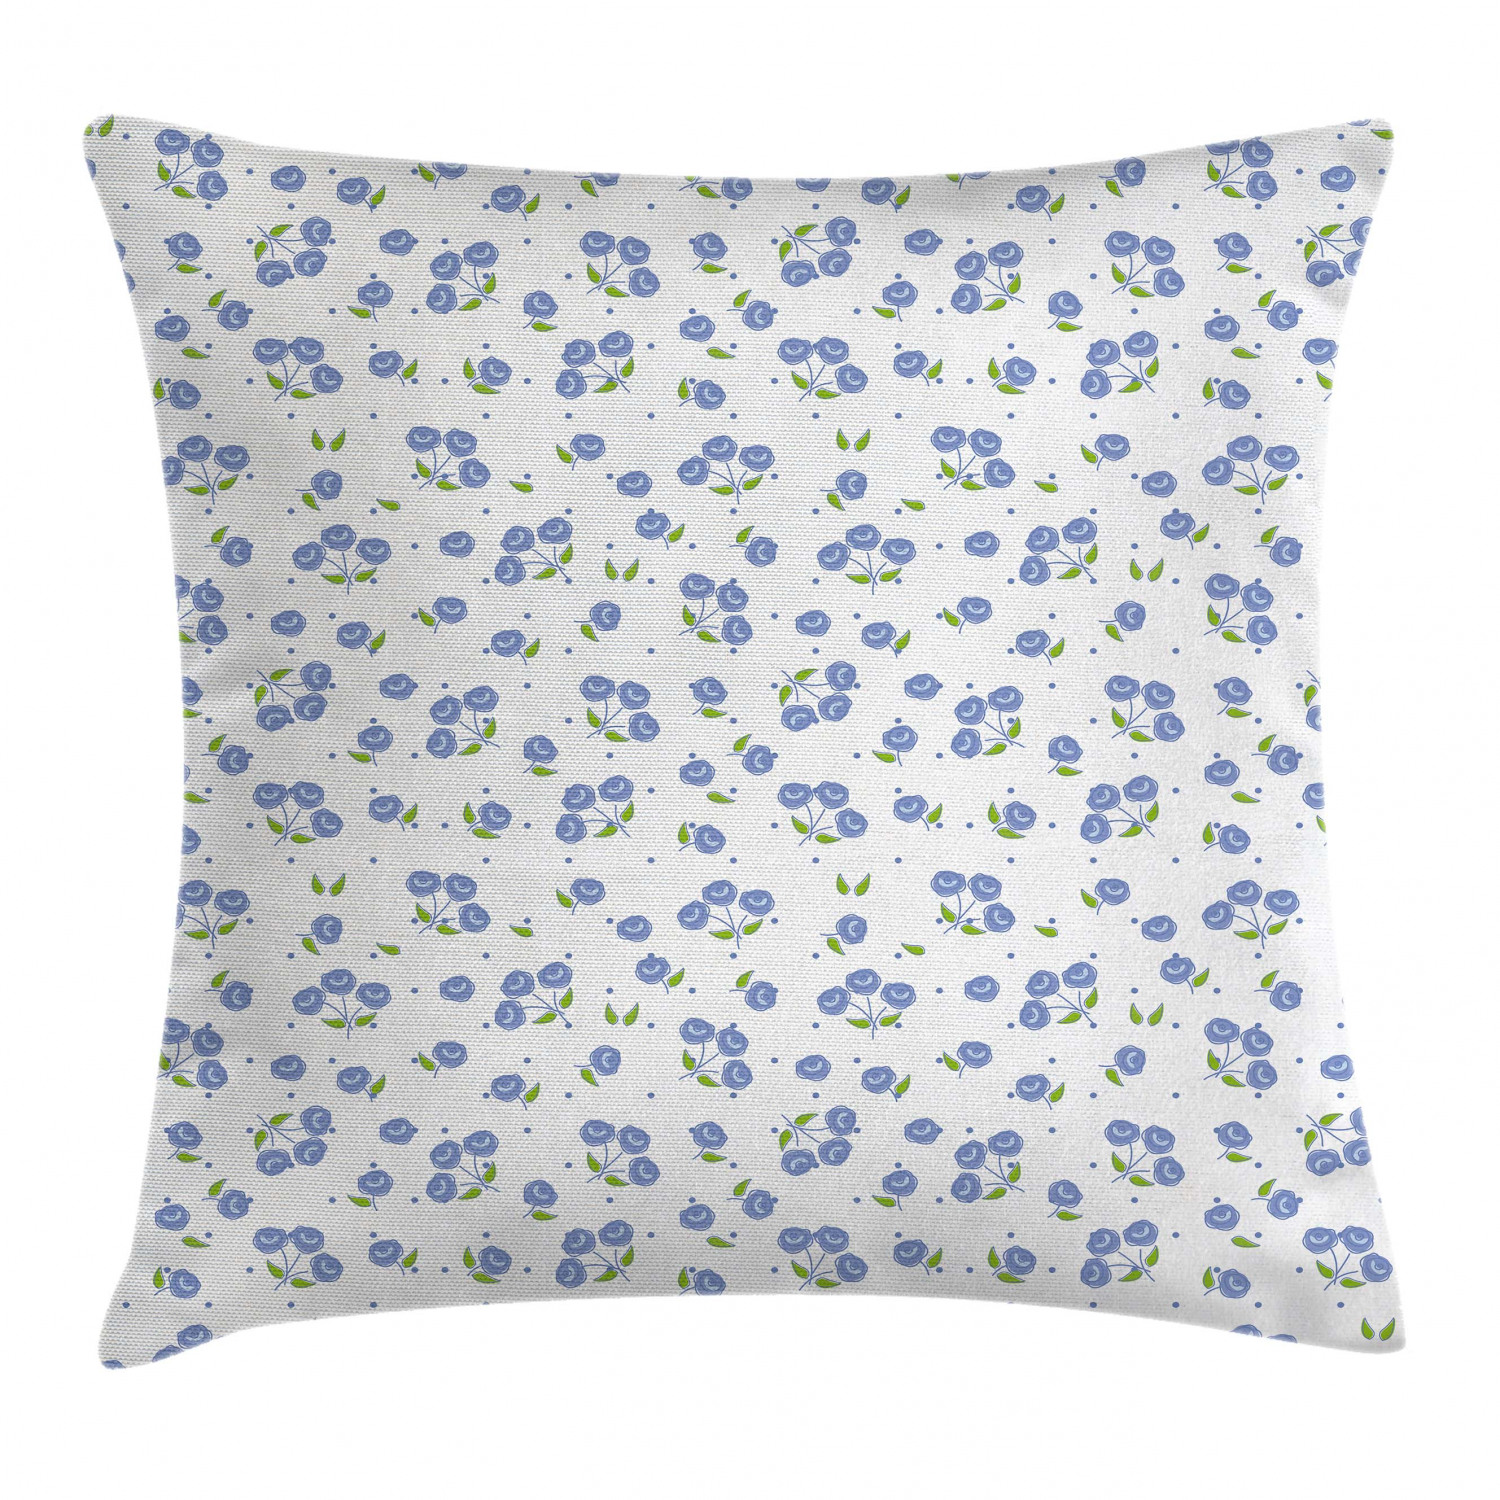 Floral Throw Pillow Cushion Cover Vintage Rose Flowers Bouquets Spring Season Theme Dots Green Leaves Decorative Square Accent Pillow Case 24 X 24 Inches Violet Blue Green White By Ambesonne Walmart Com